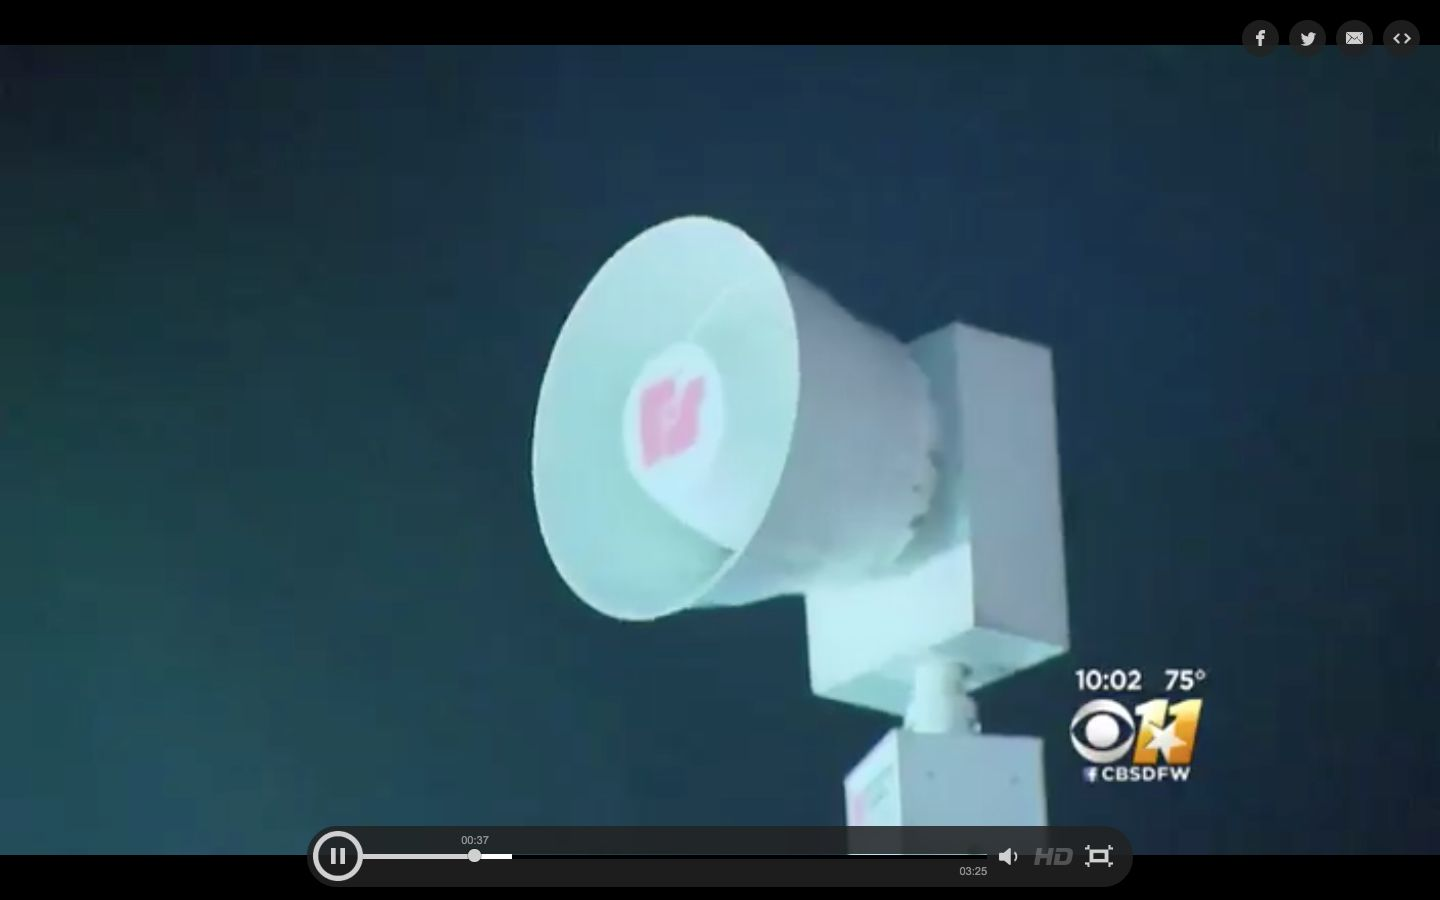 Dallas residents endured an hour and a half of city-wide sirens just before midnight on Friday.